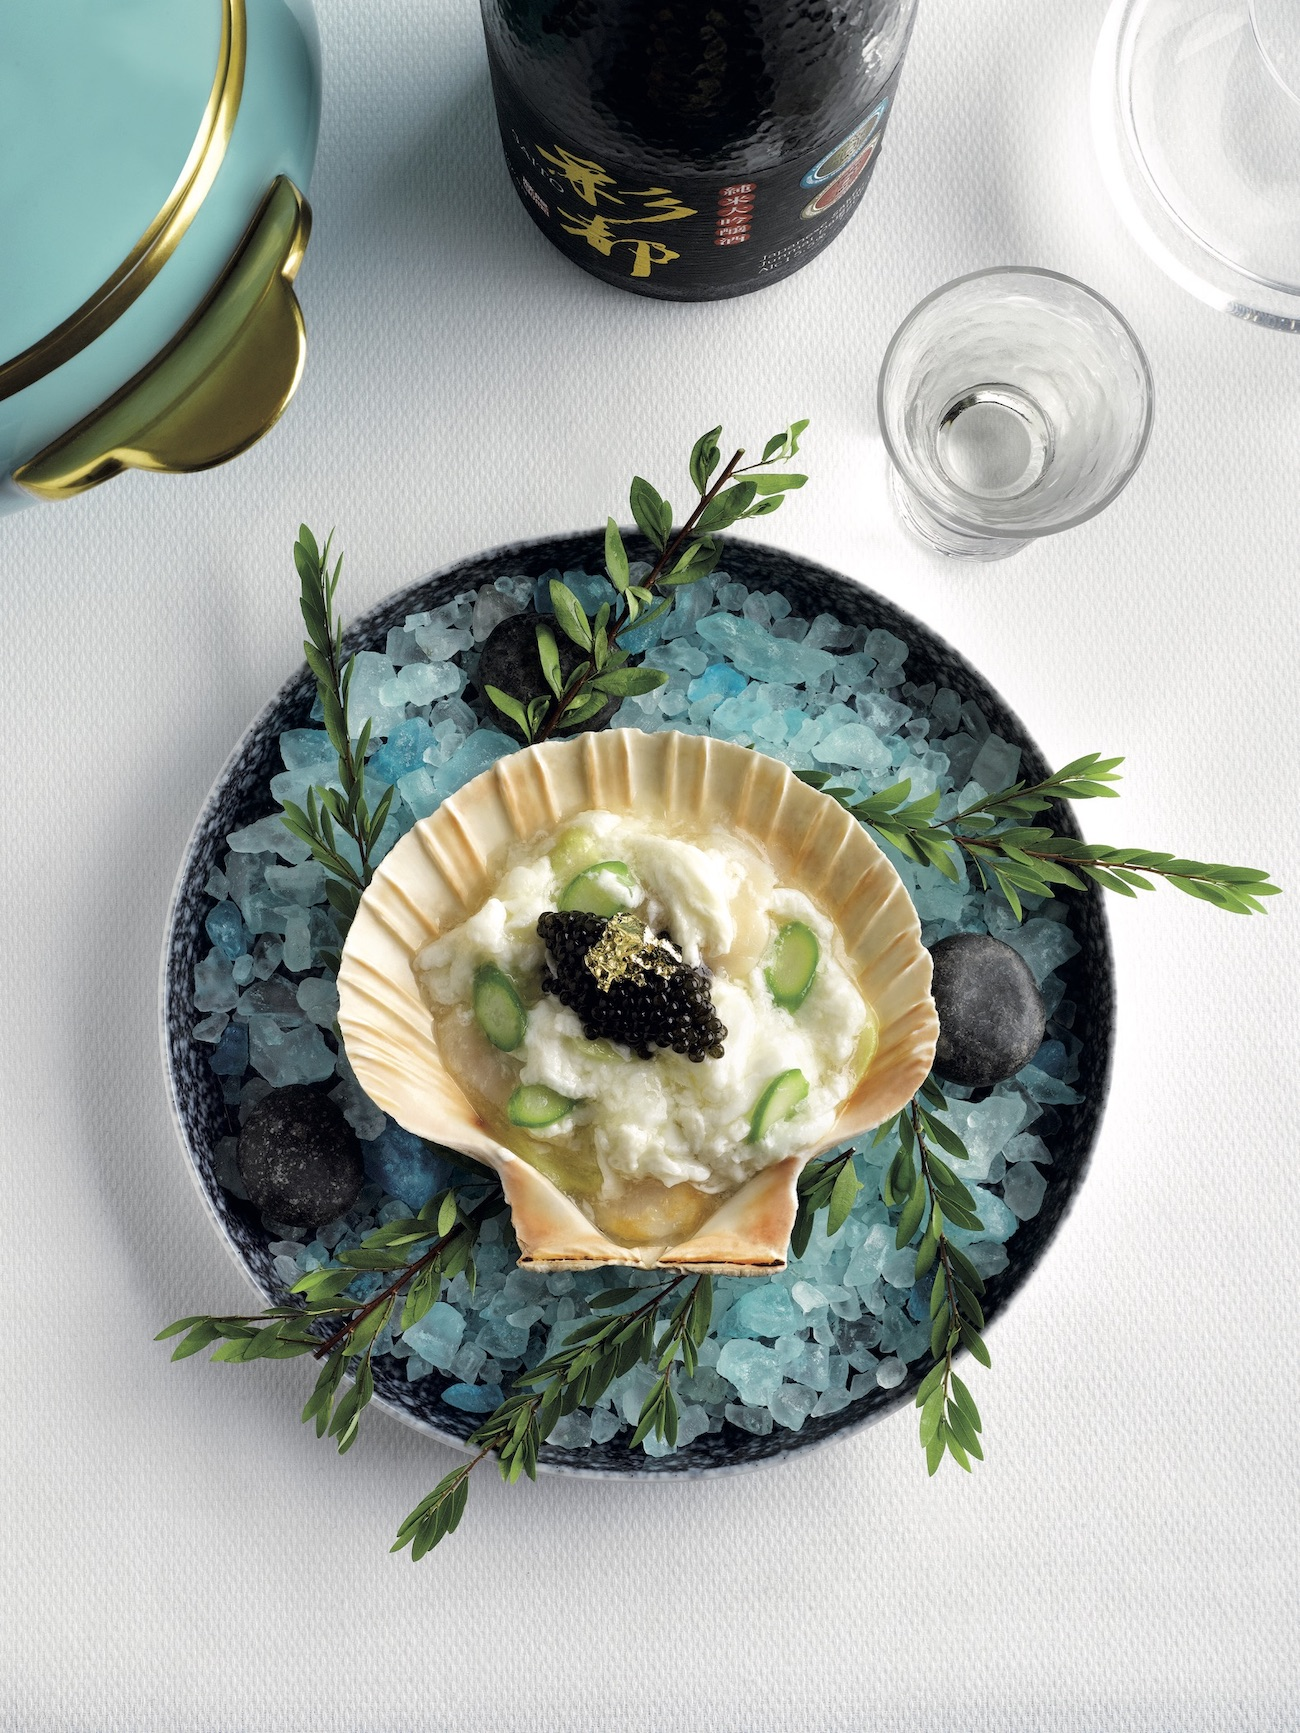 Scallop with Egg White Appetiser (Photo: Chinoiserie) ladies who lunch